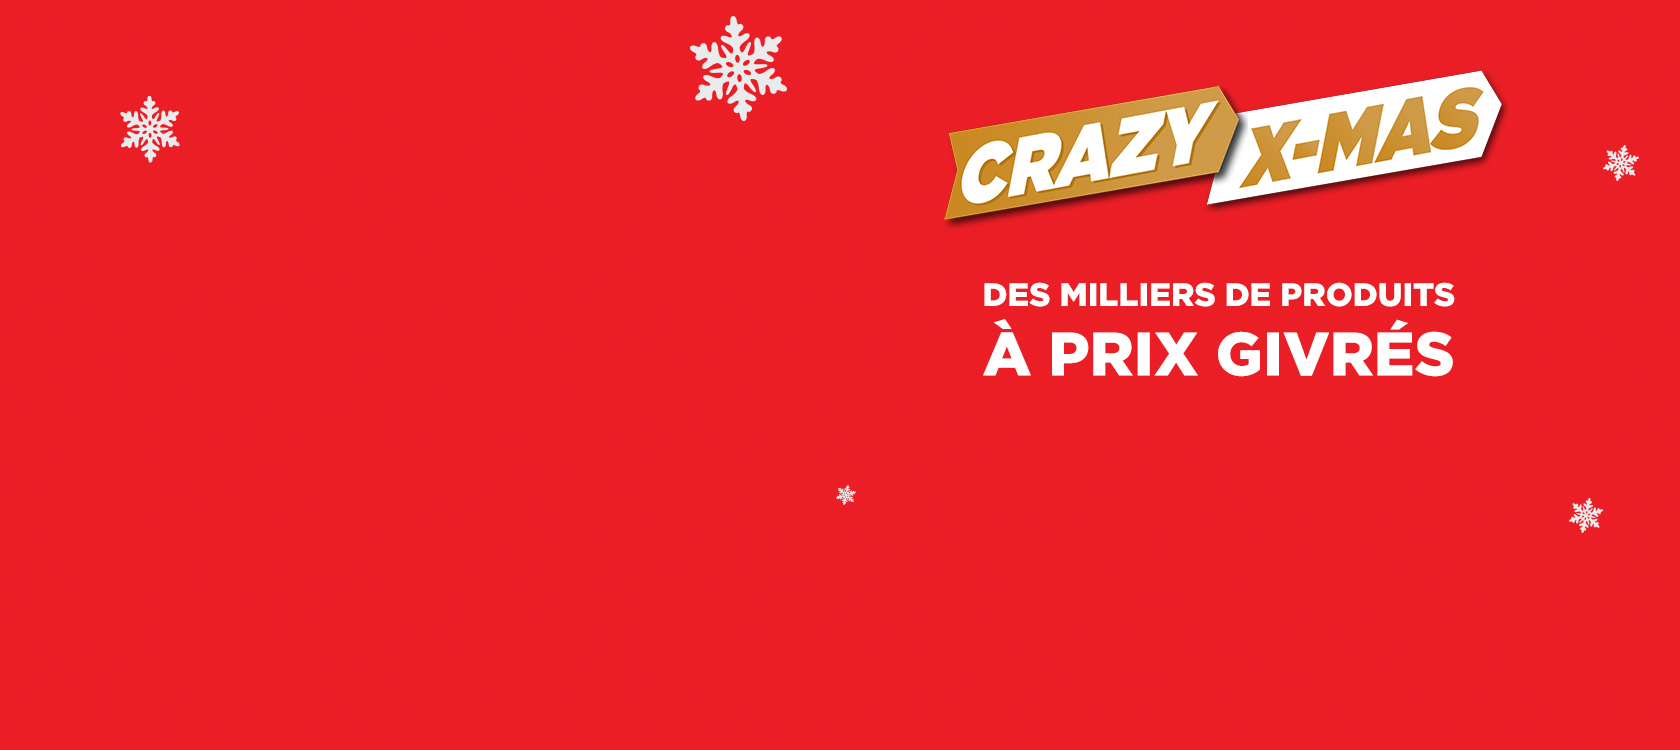 https://www.micromania.fr/on/demandware.static/-/Sites-Micromania-Library/default/dwfffe536f/Herocarousel/large/generique-background-desktop-normal-crazy-xmas.jpg